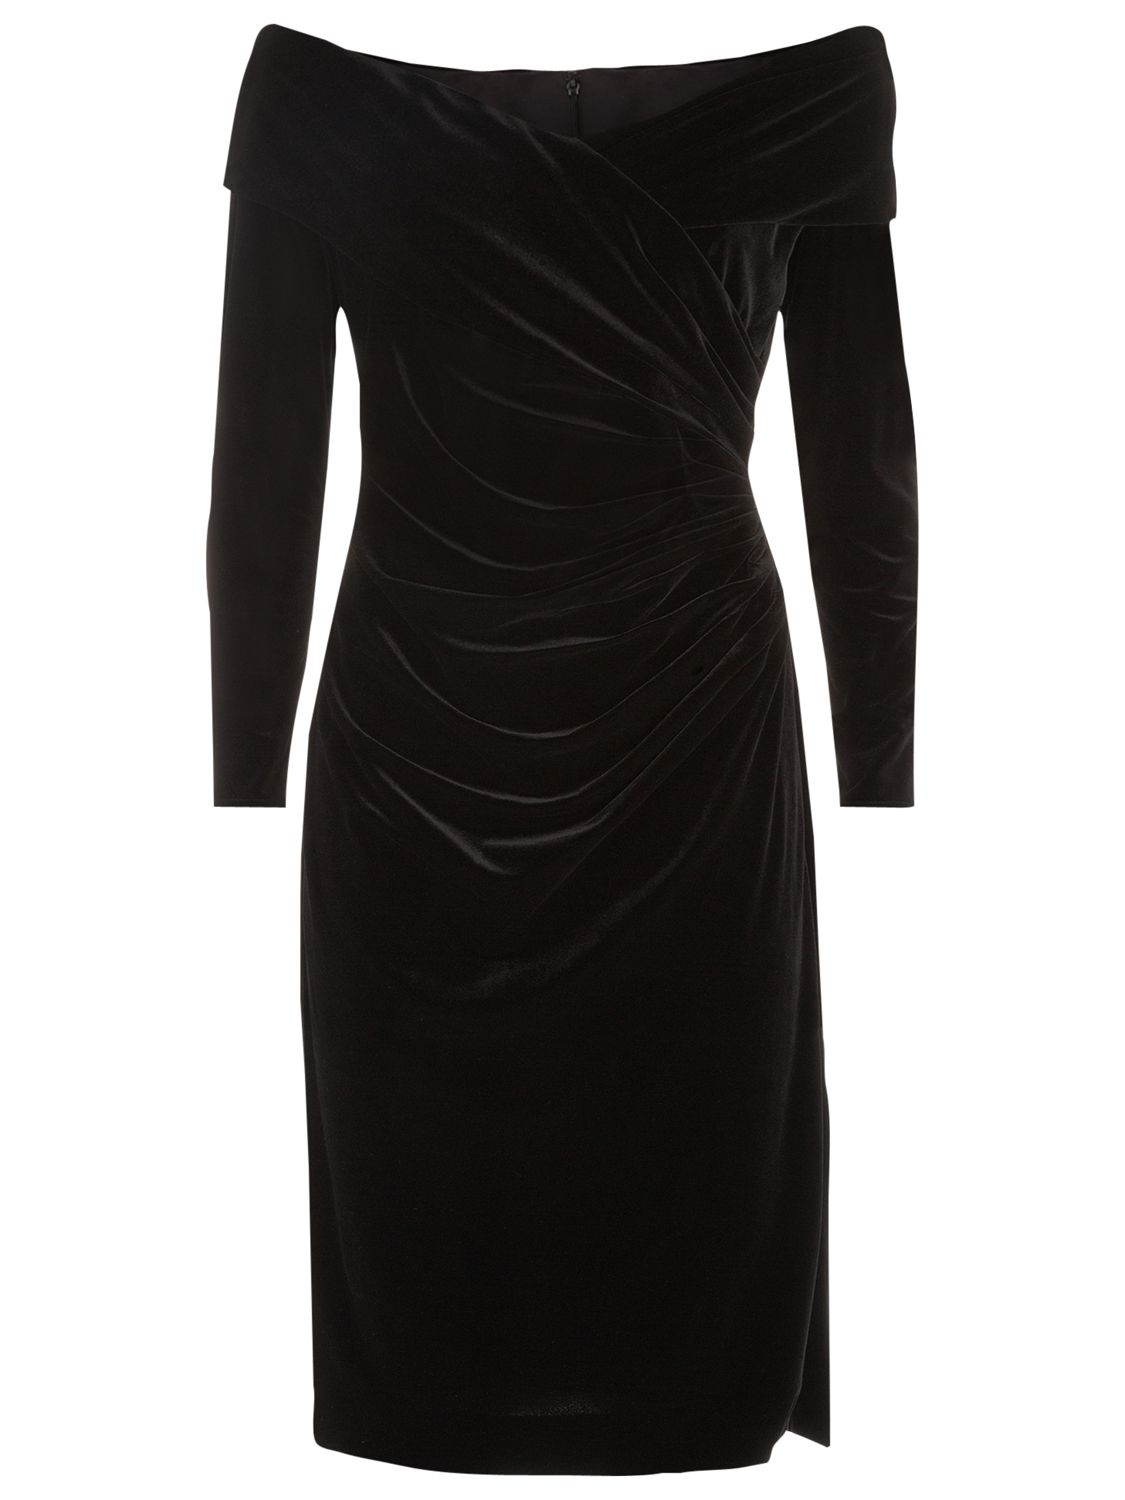 jacques vert lorcan mullany velvet cocktail dress black, jacques, vert, lorcan, mullany, velvet, cocktail, dress, black, jacques vert, 16|18, clearance, womenswear offers, womens dresses offers, special offers, women, plus size, inactive womenswear, new reductions, womens dresses, 1691054